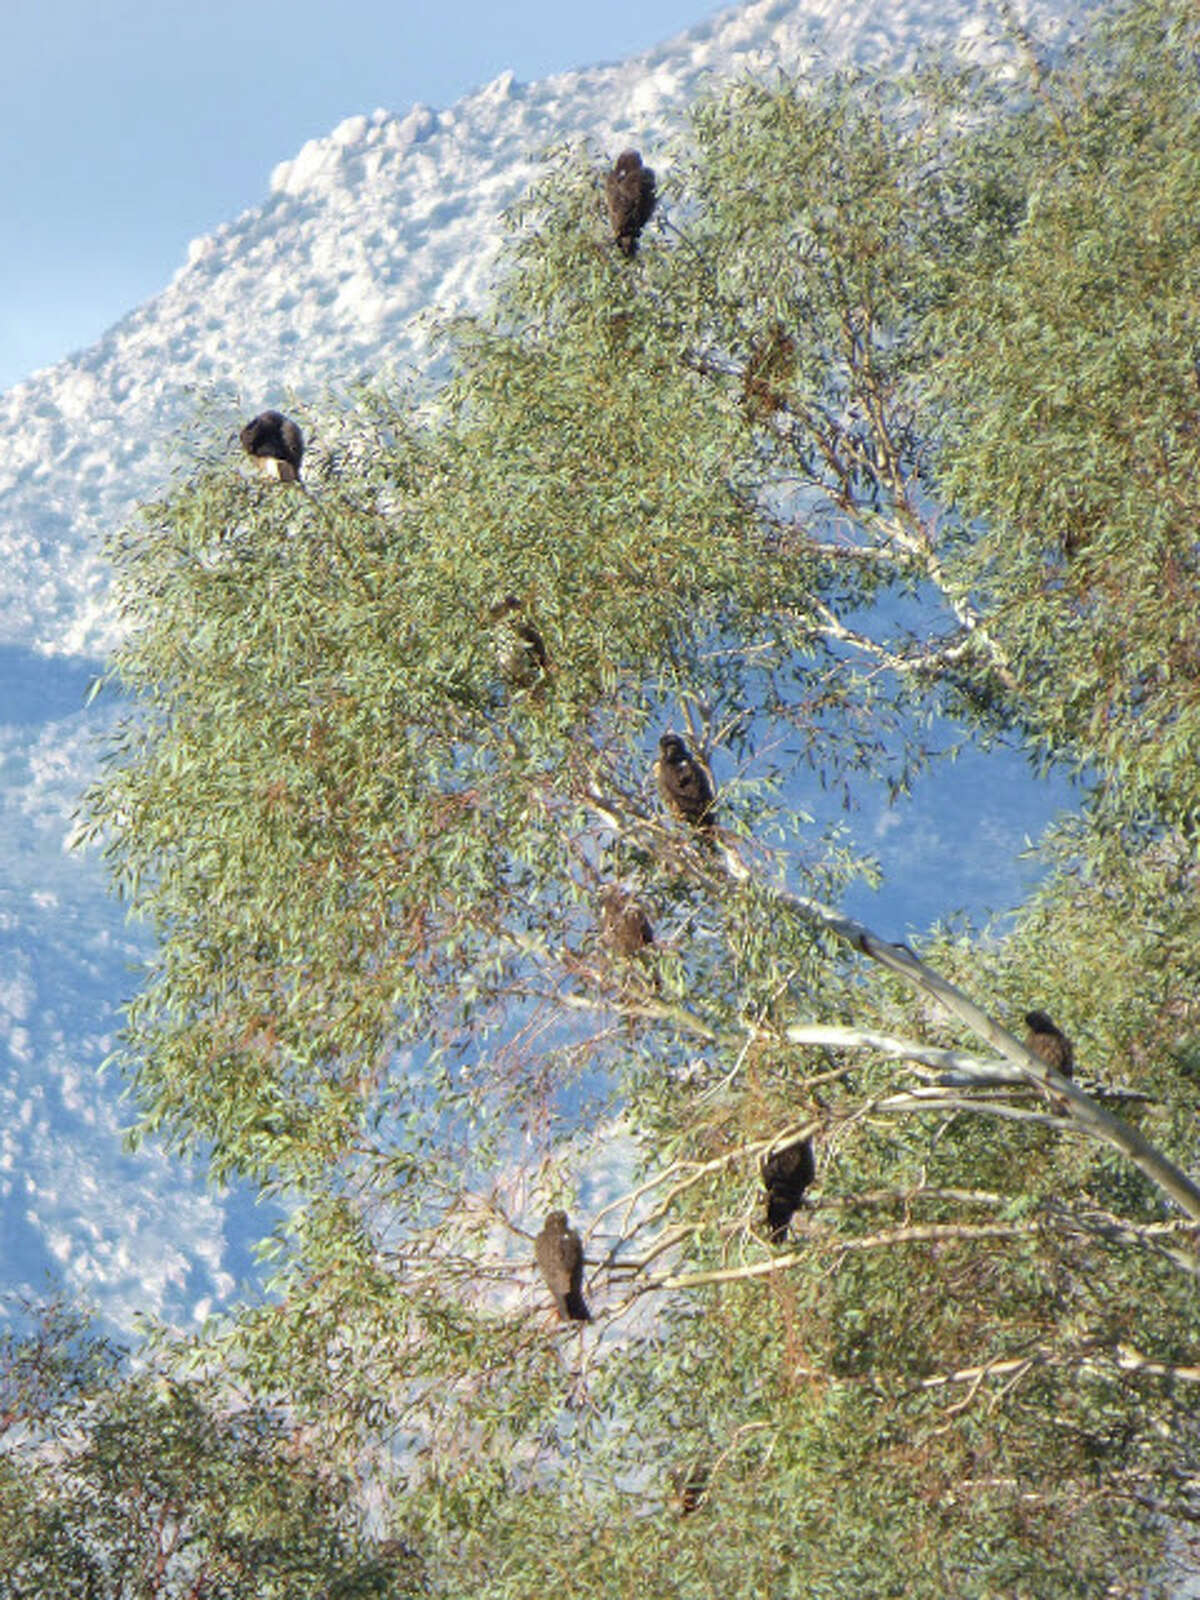 It's eat or be eaten in Anza-Borrego State Park. This year, a record number of Swainson's hawks have descended upon the park as a stopover on their yearly winter migration. The hawks eat the white-lined sphinx moth caterpillars, which in turn munch the blooming wildflowers.